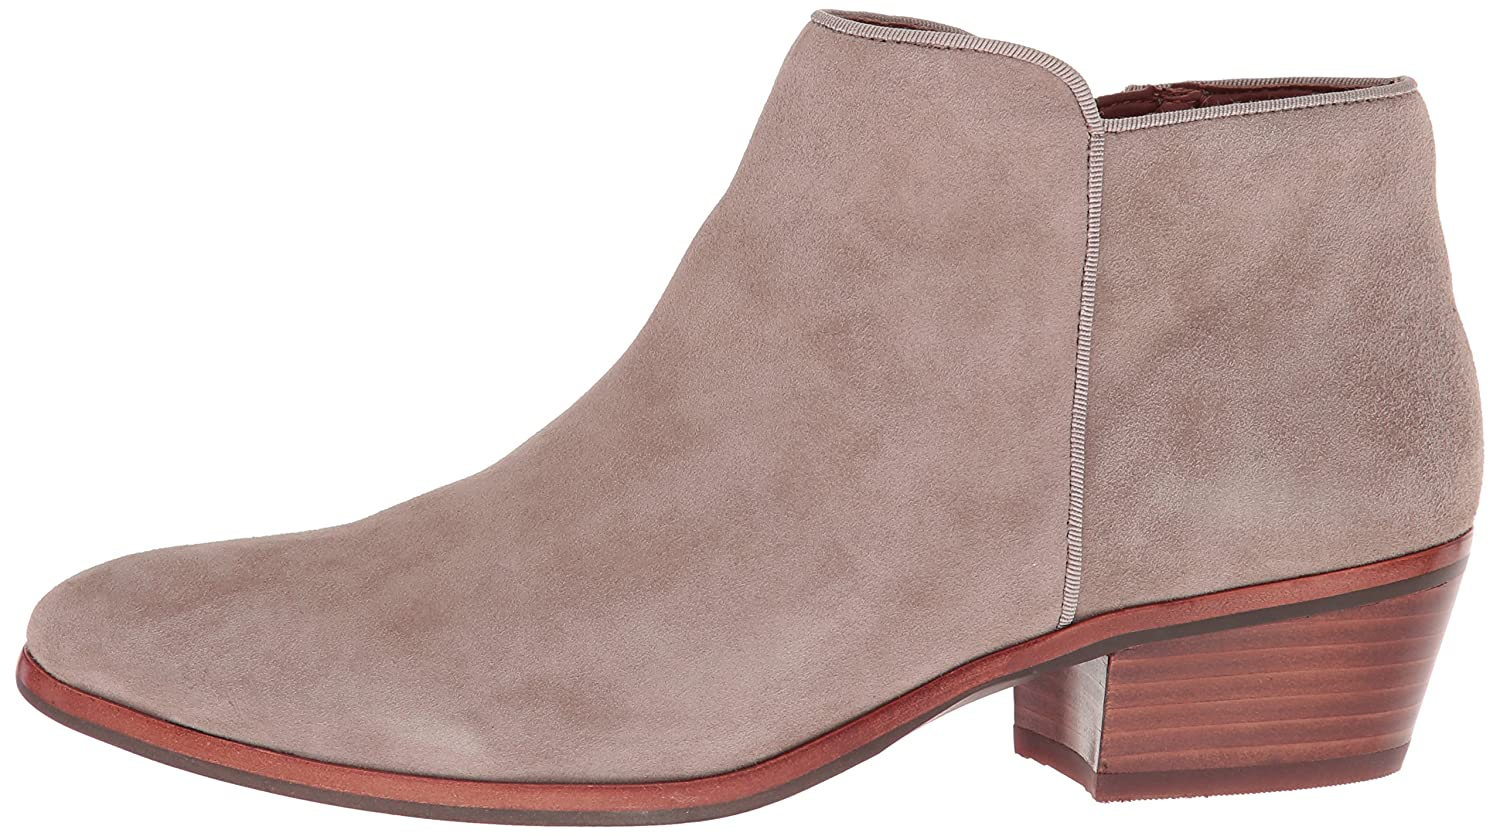 Sam Edelman Women's Petty Ankle Boot B00593P3XW 5 B(M) US|Putty Suede